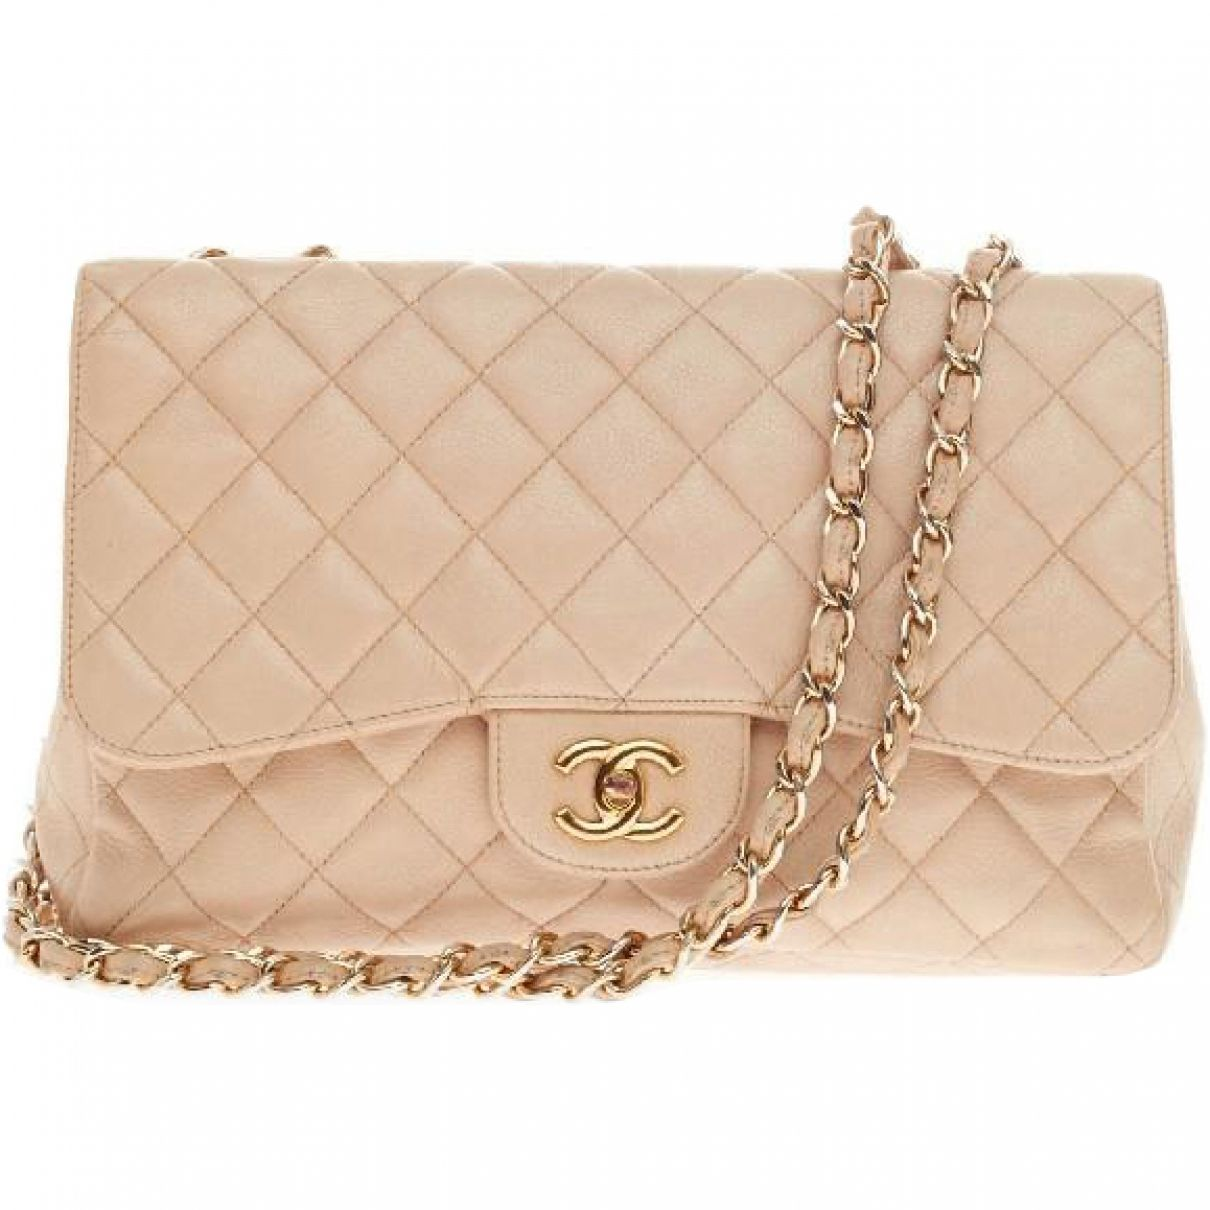 Chanel Handbags Uk Luxury Bags For Women